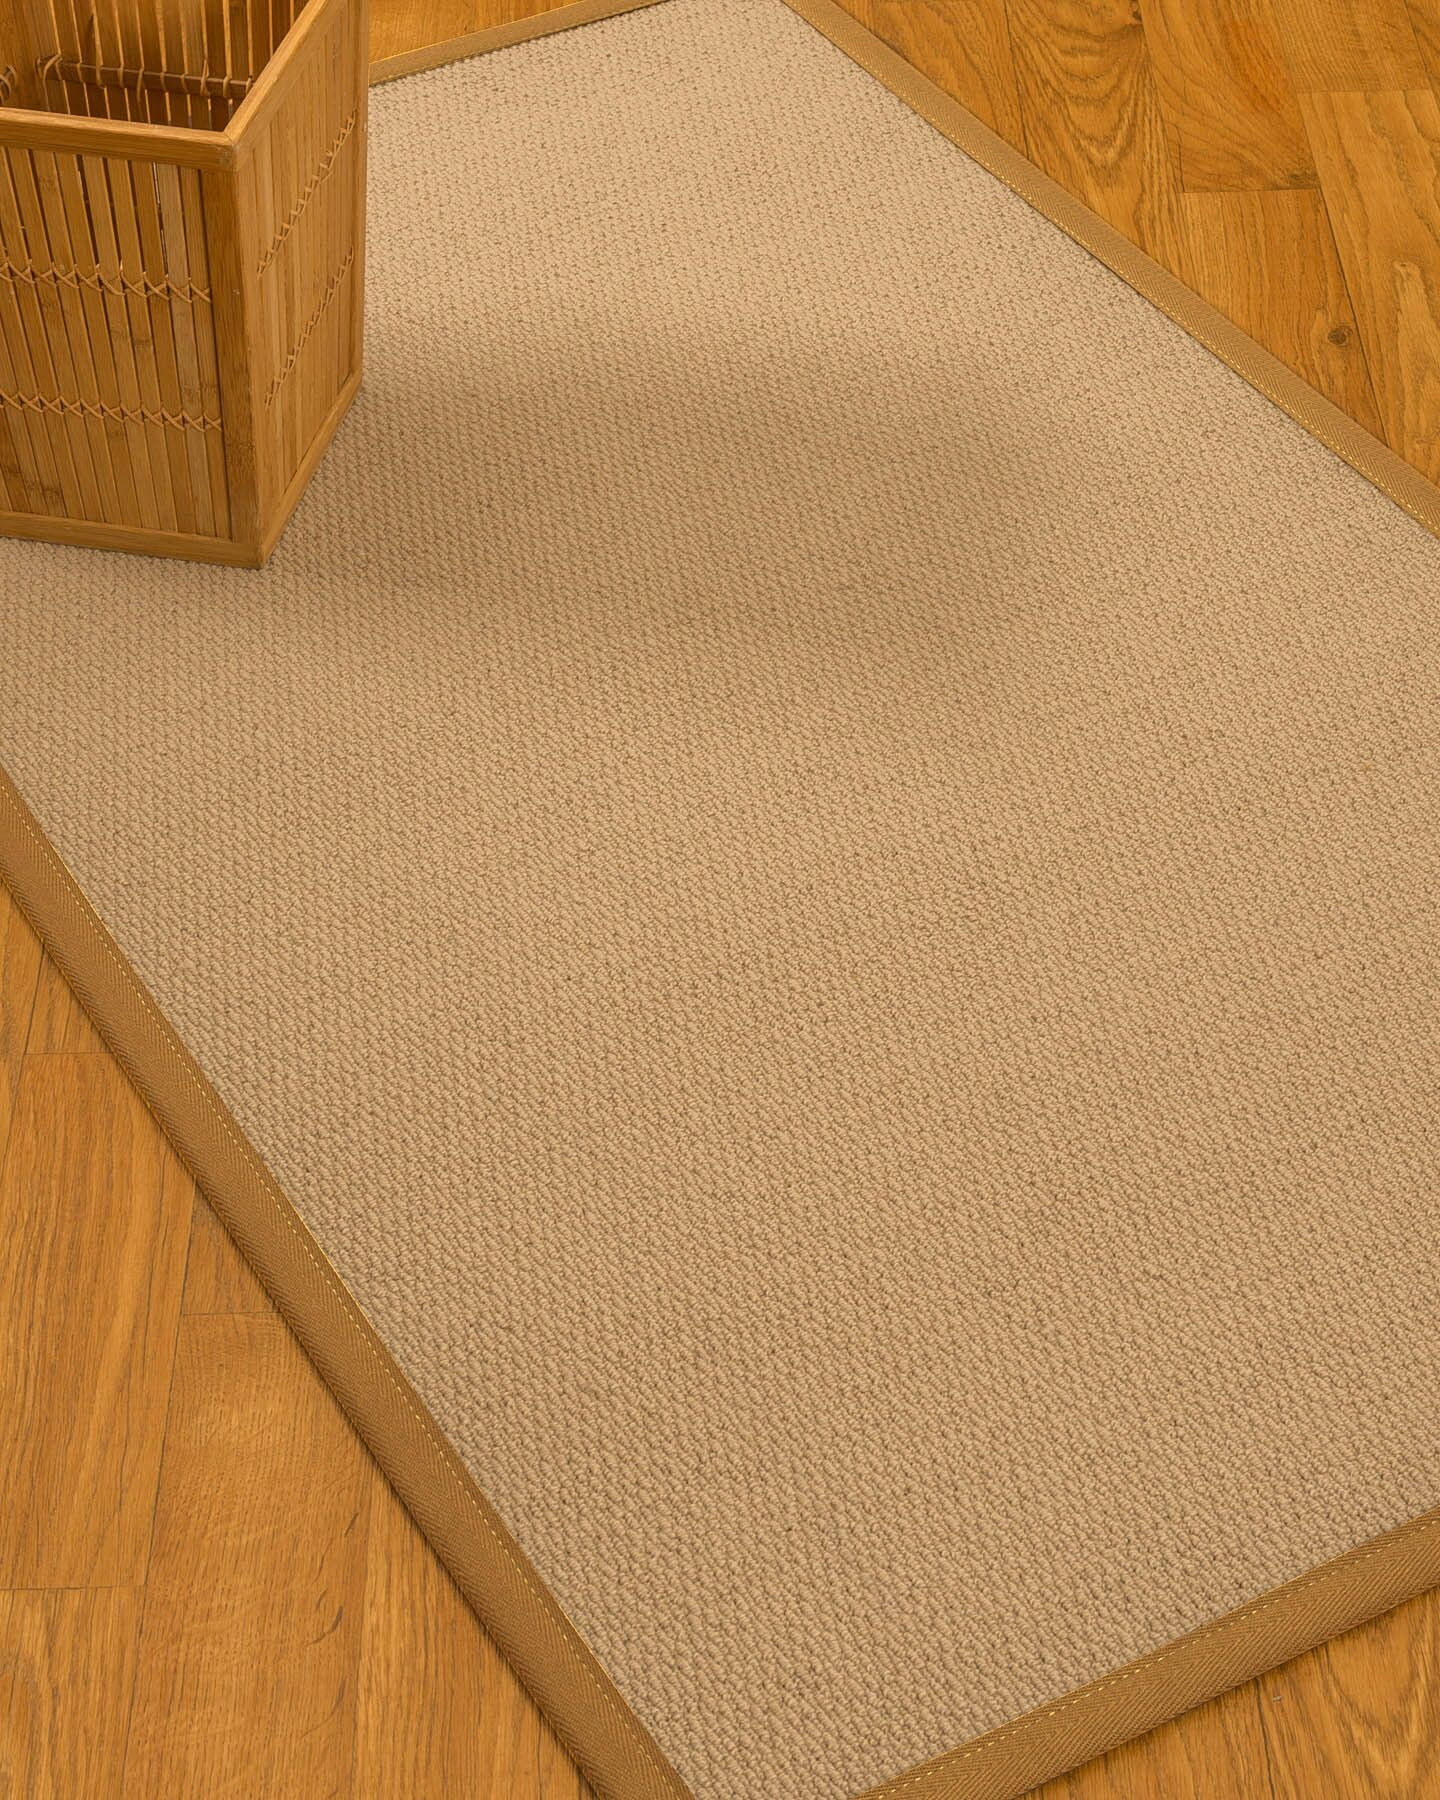 Chea Border Hand-Woven Woaol Beige/Sienna Area Rug Rug Size: Rectangle 5' x 8', Rug Pad Included: Yes